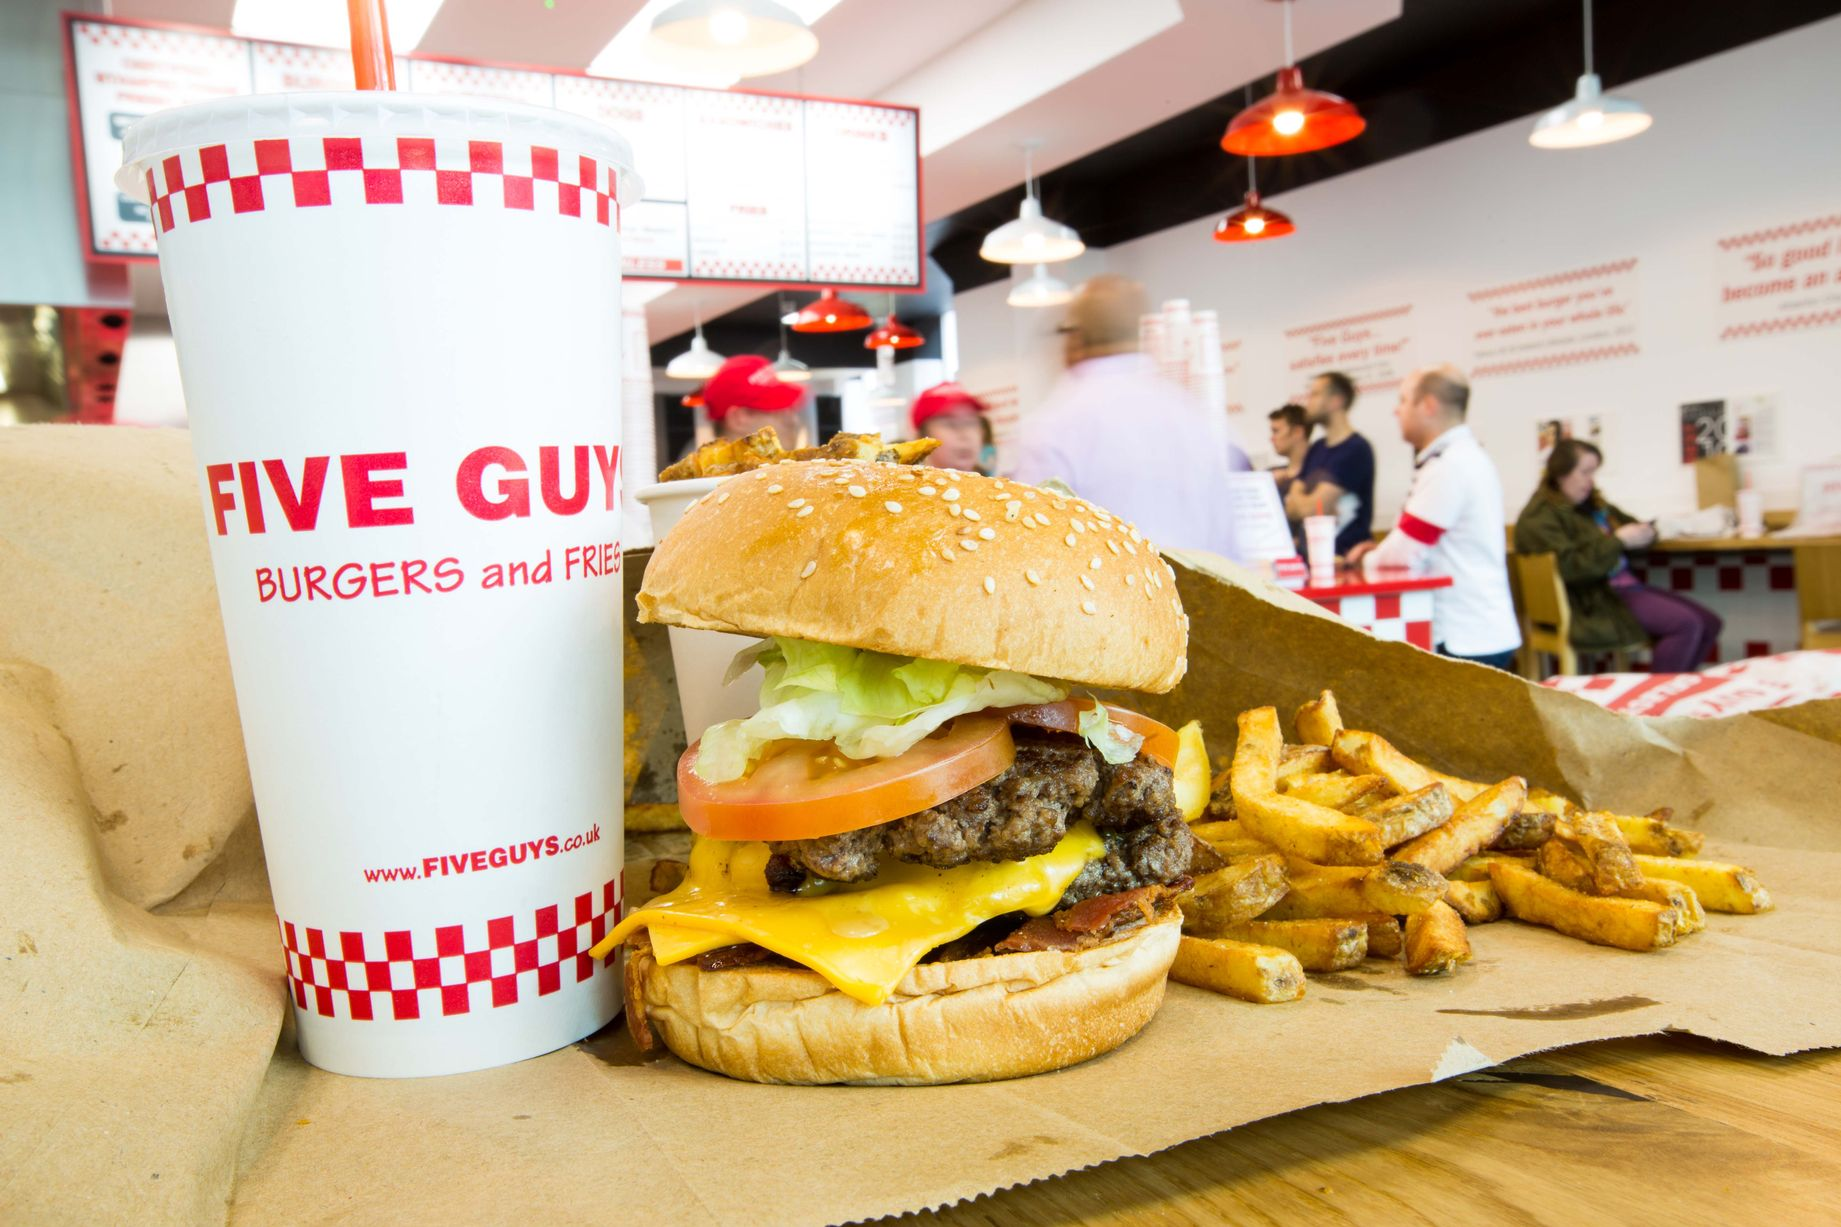 How Many Calories Are In A Five Guys Burger